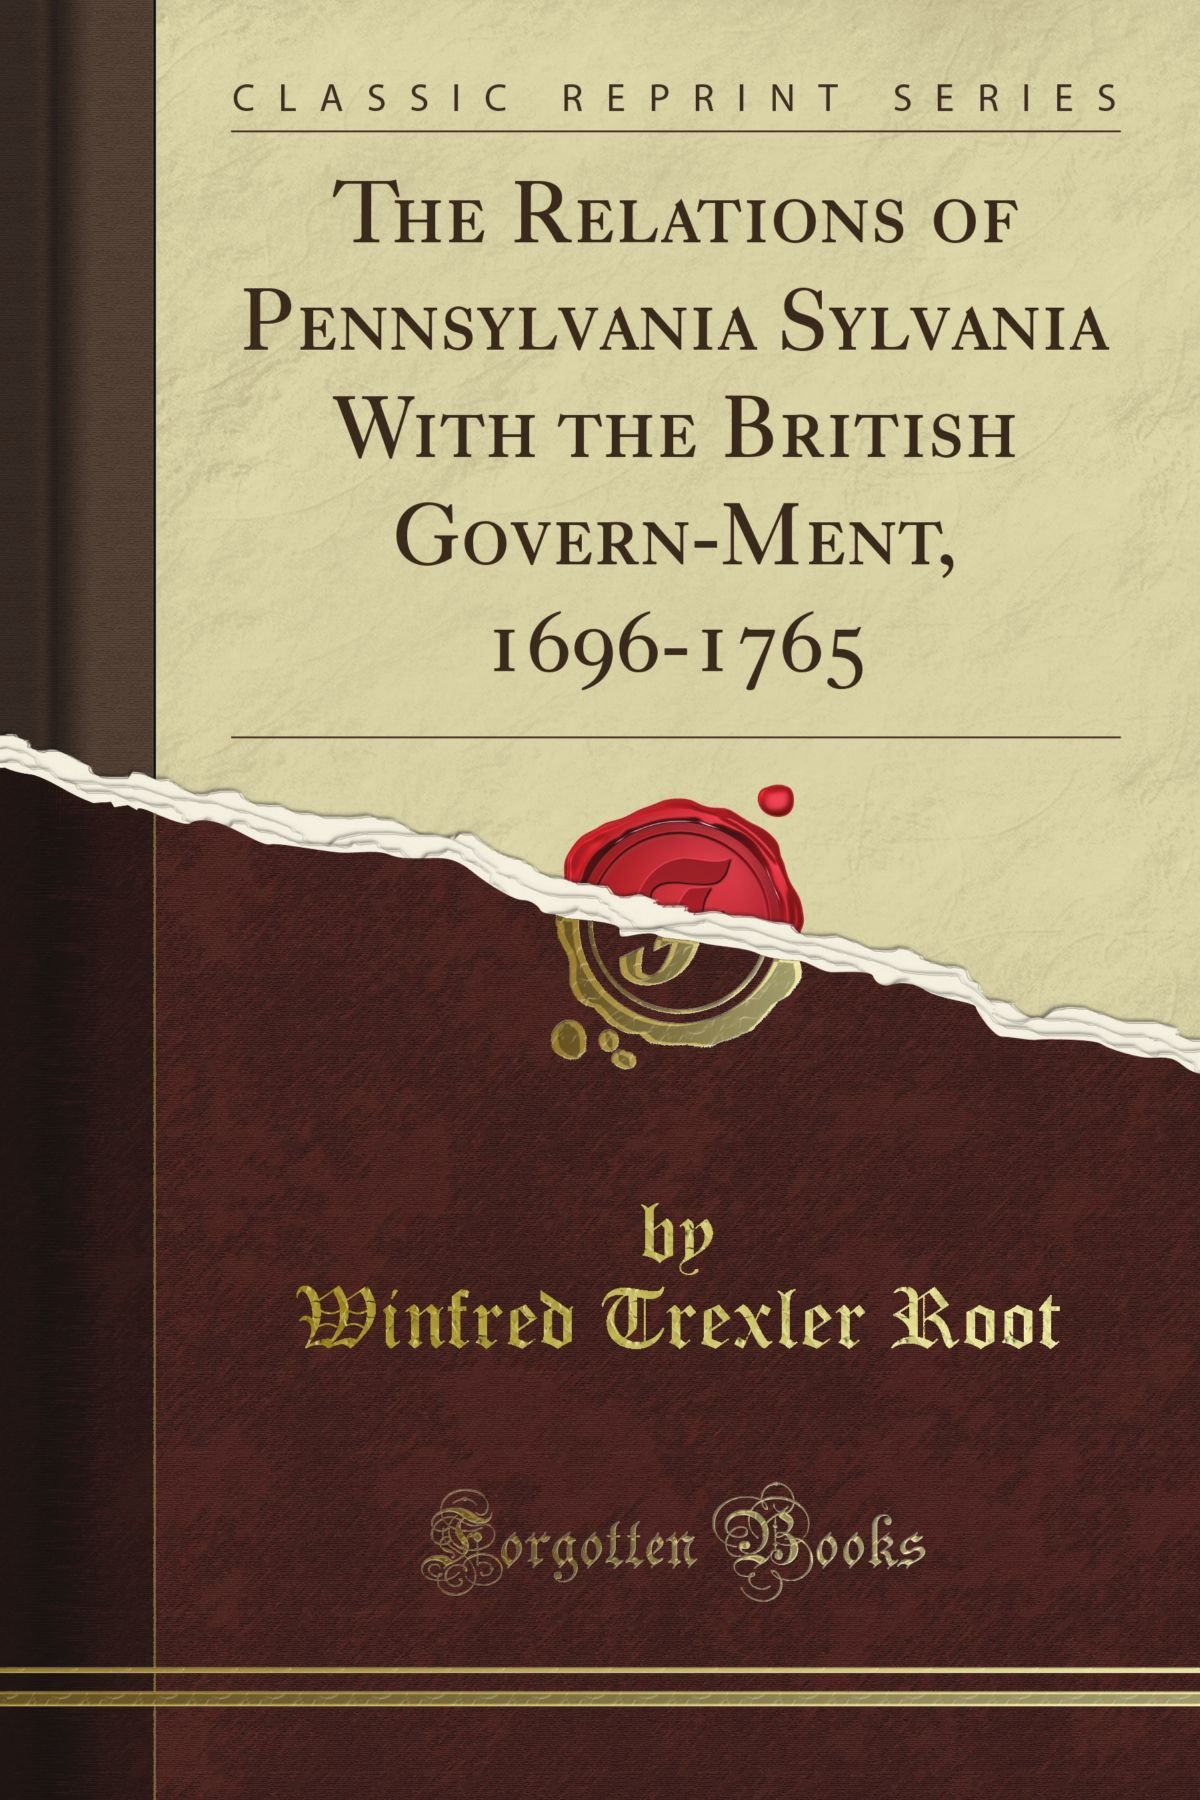 Download The Relations of Pennsylvania Sylvania With the British Govern-Ment, 1696-1765 (Classic Reprint) PDF